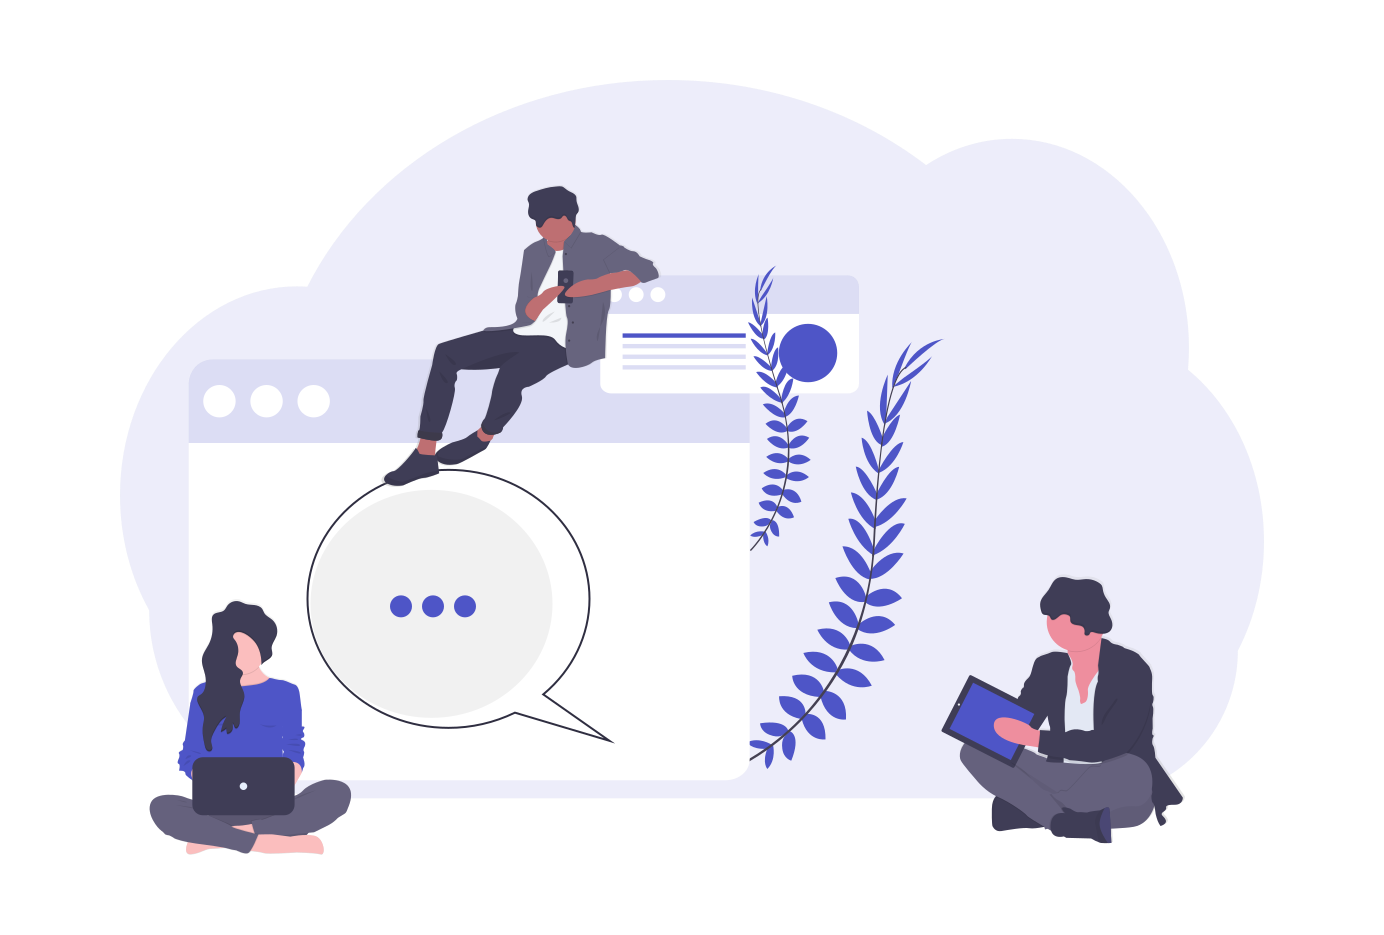 2021 - Remote Work Predictions 🌎